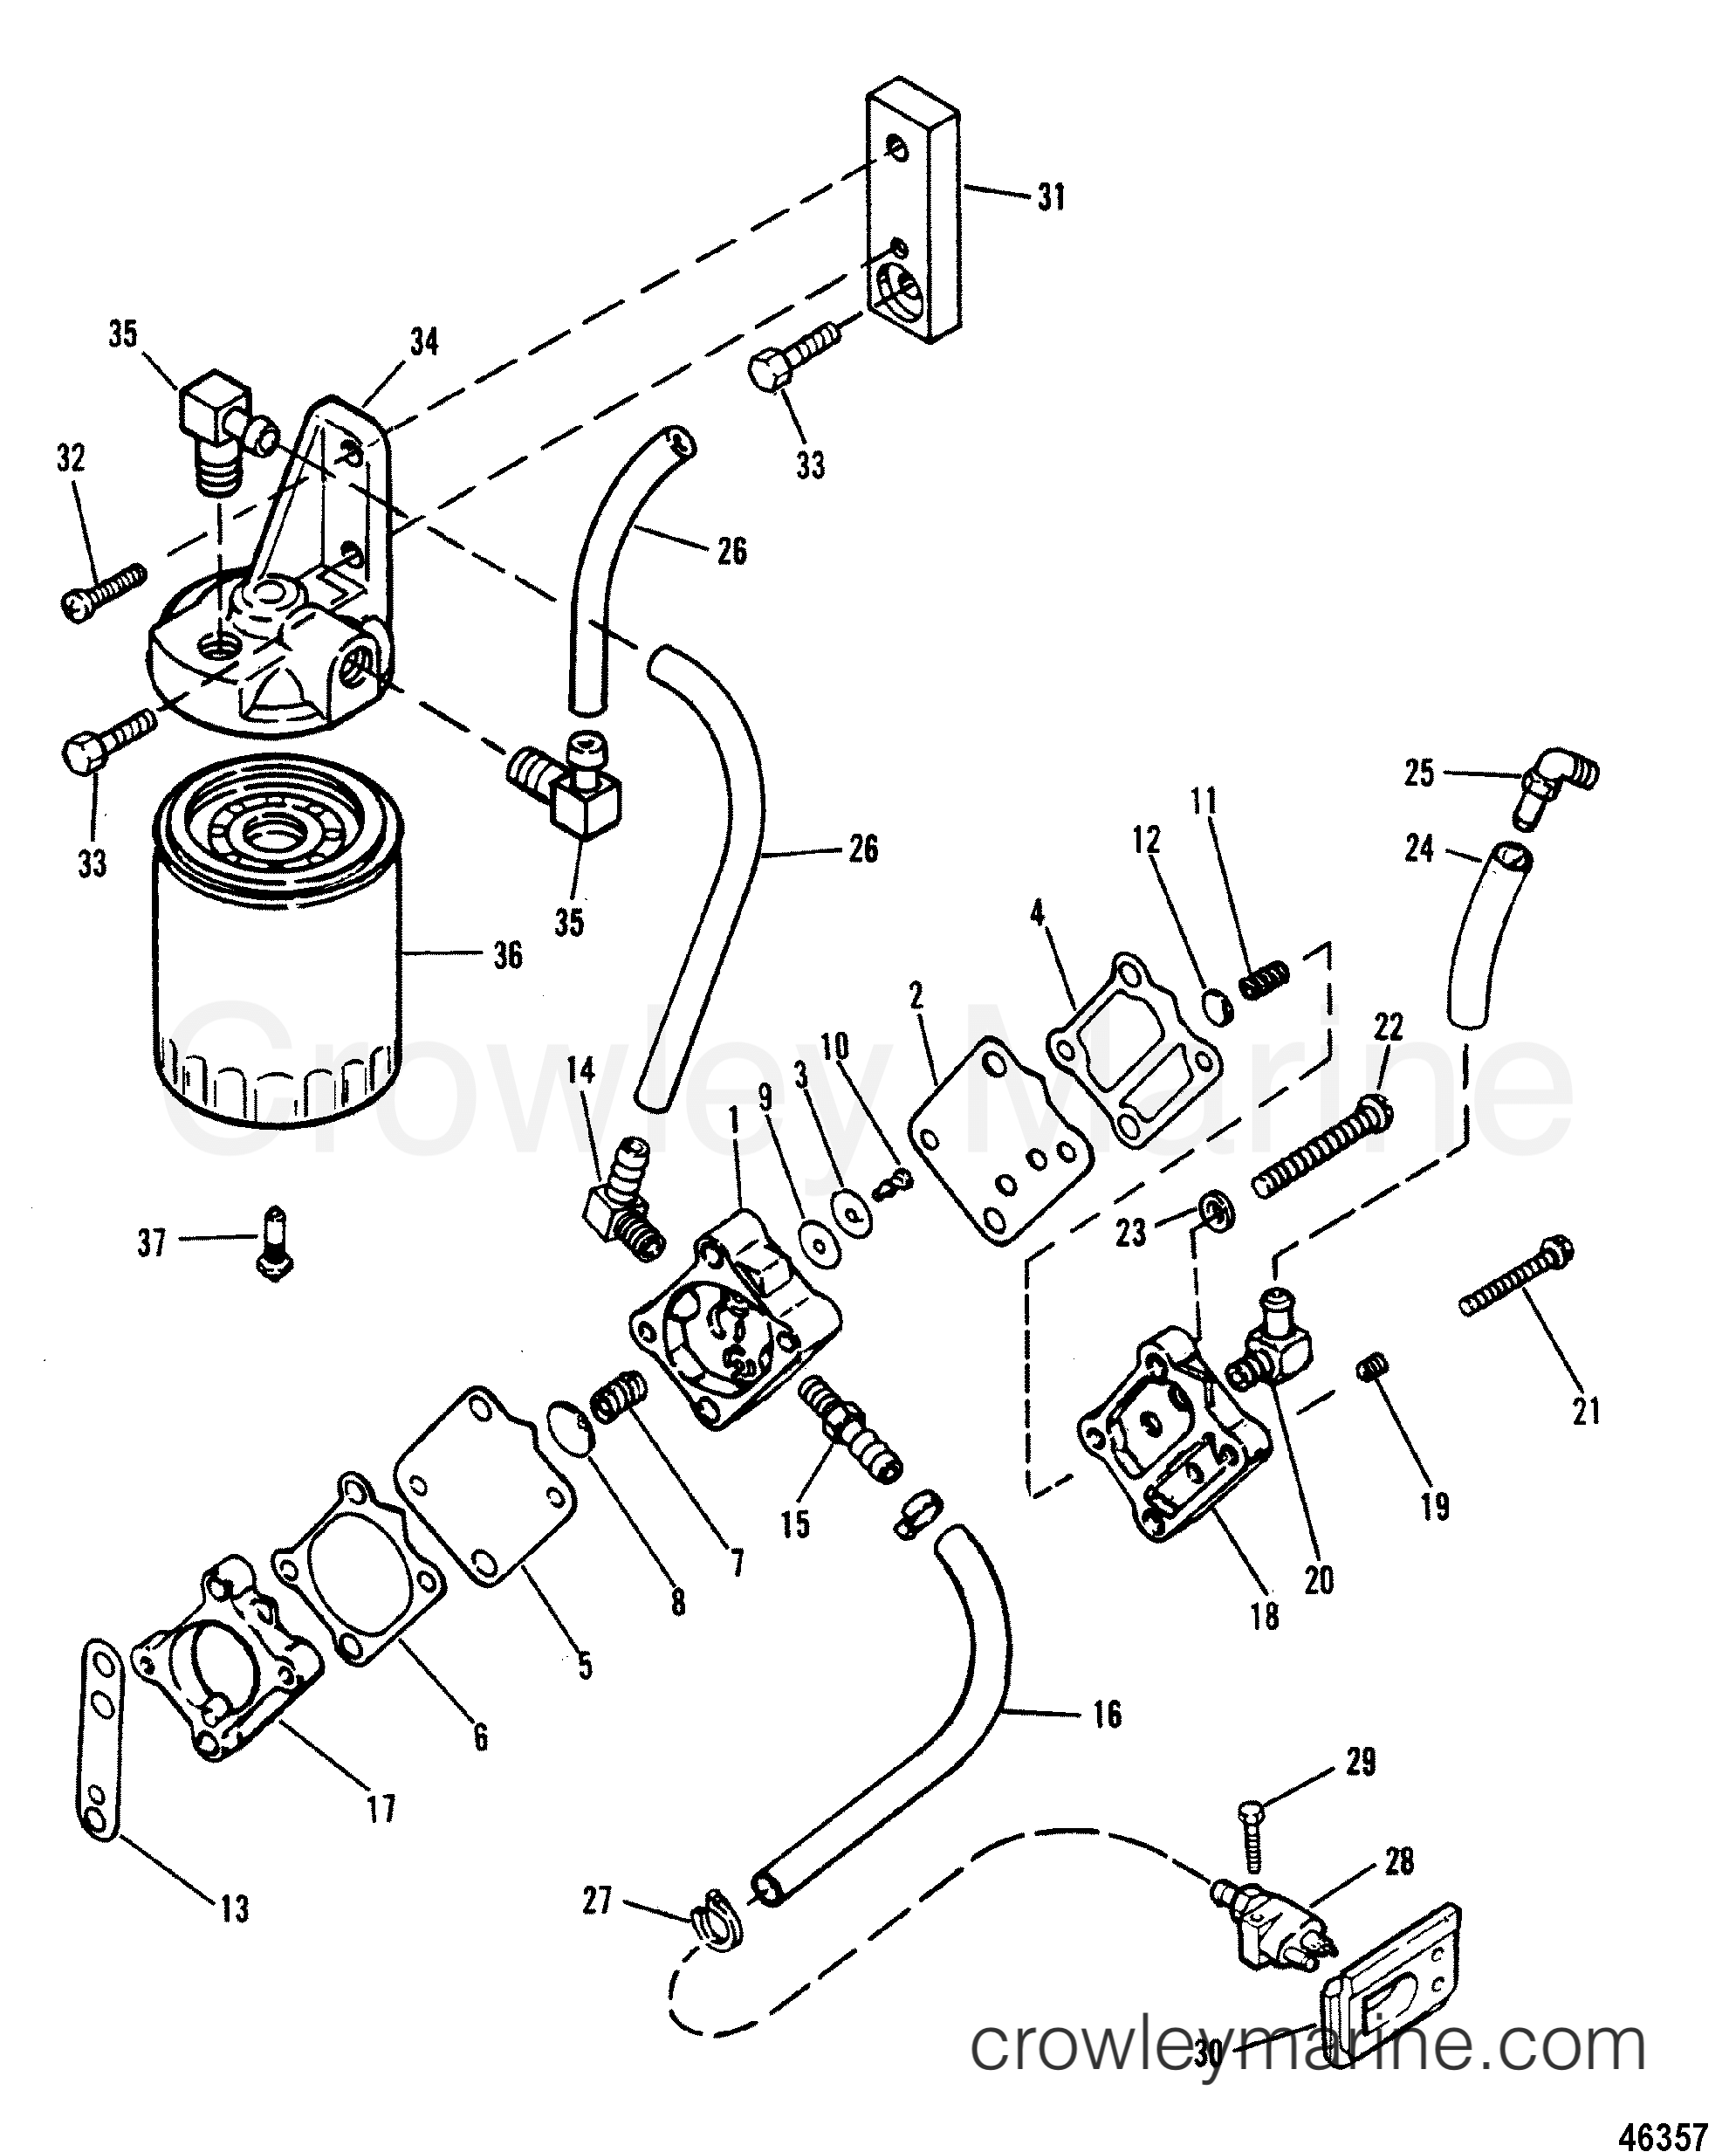 fuel pump and fuel filter